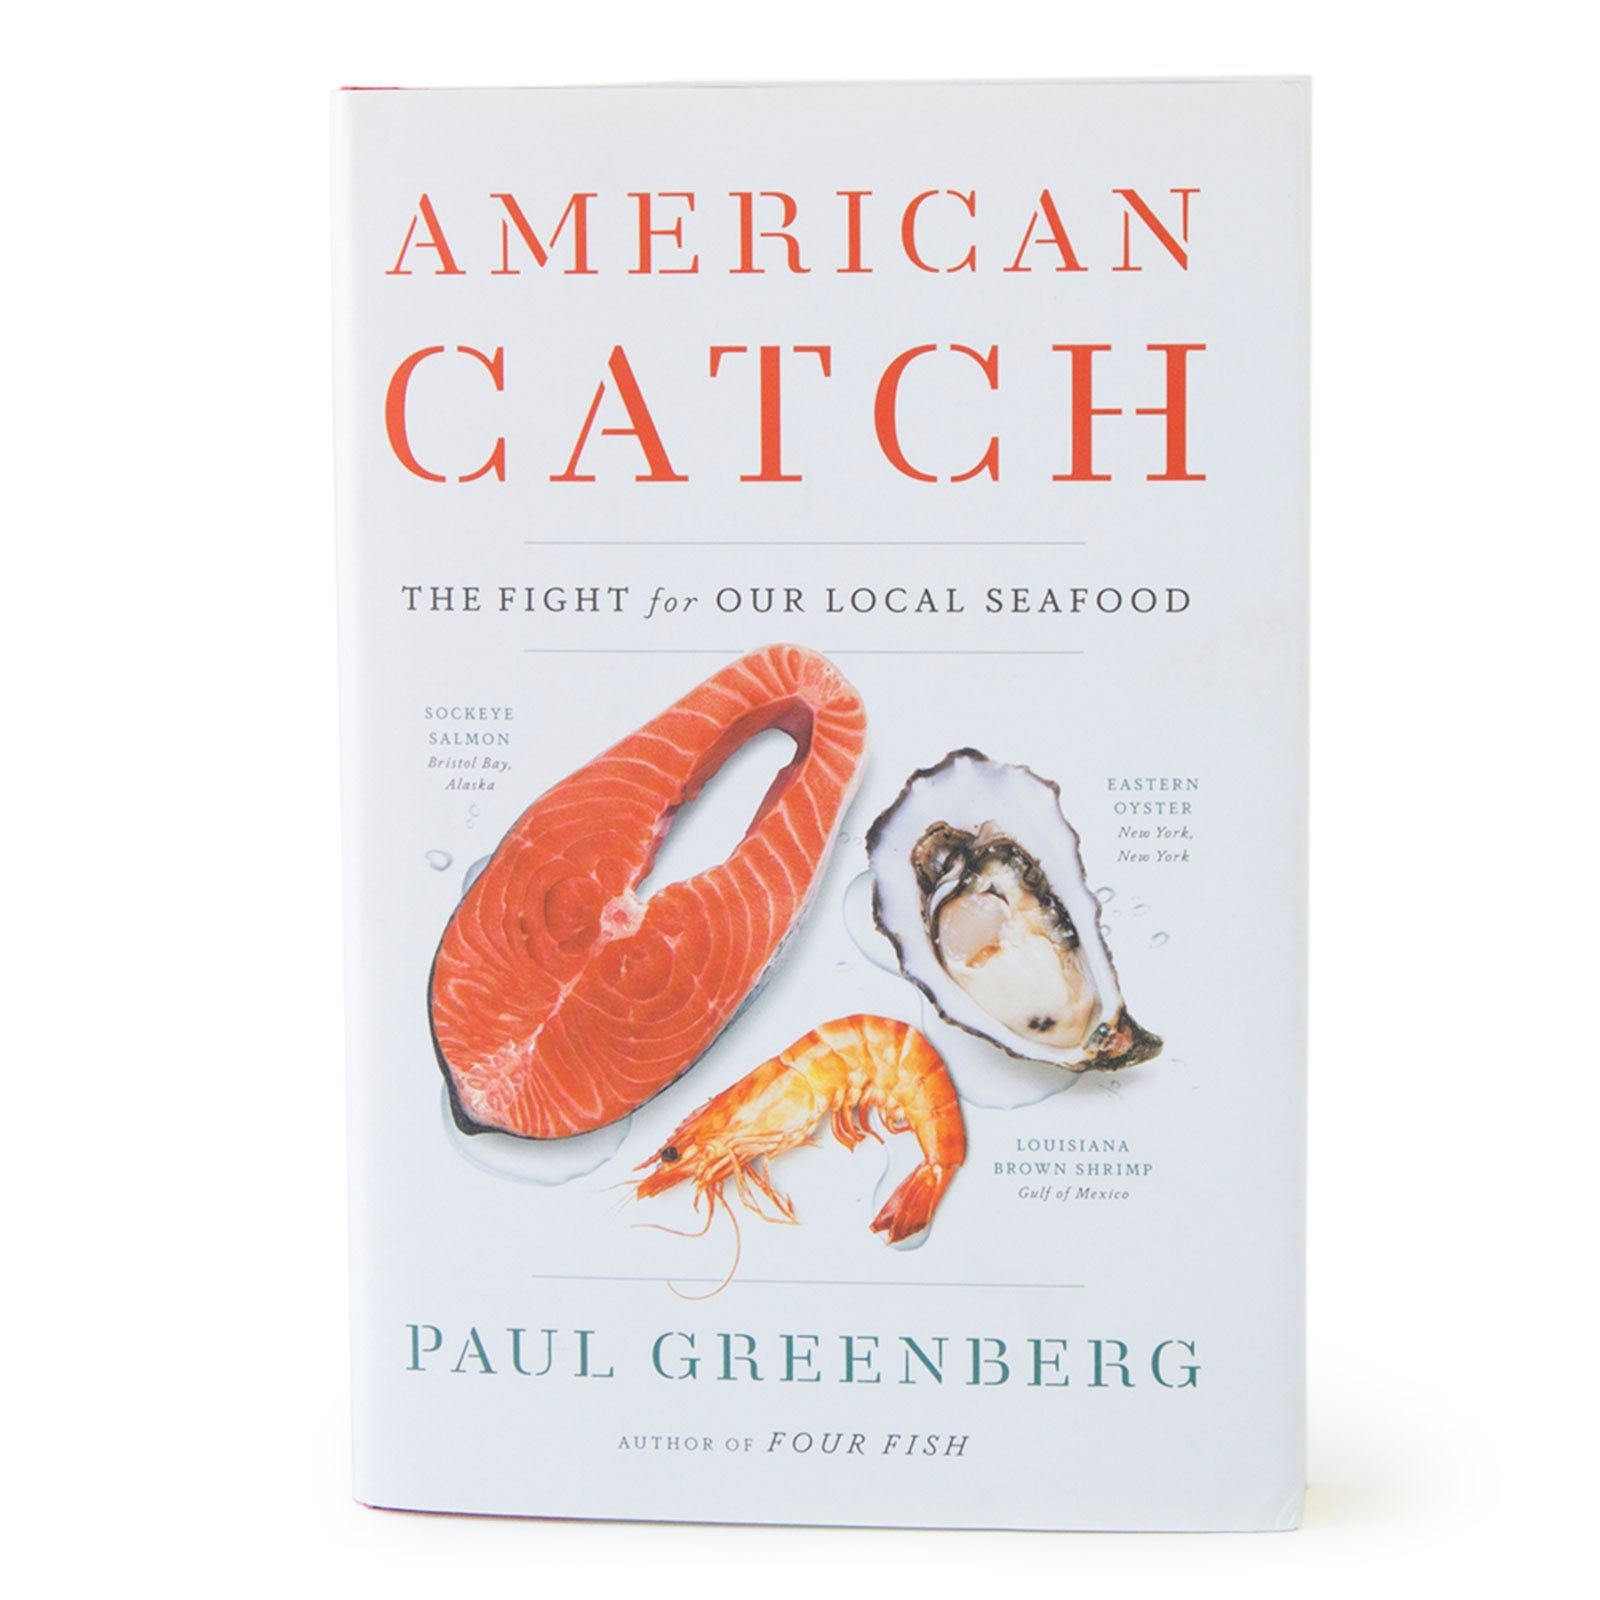 American Catch book cover by Paul Greenberg on white background